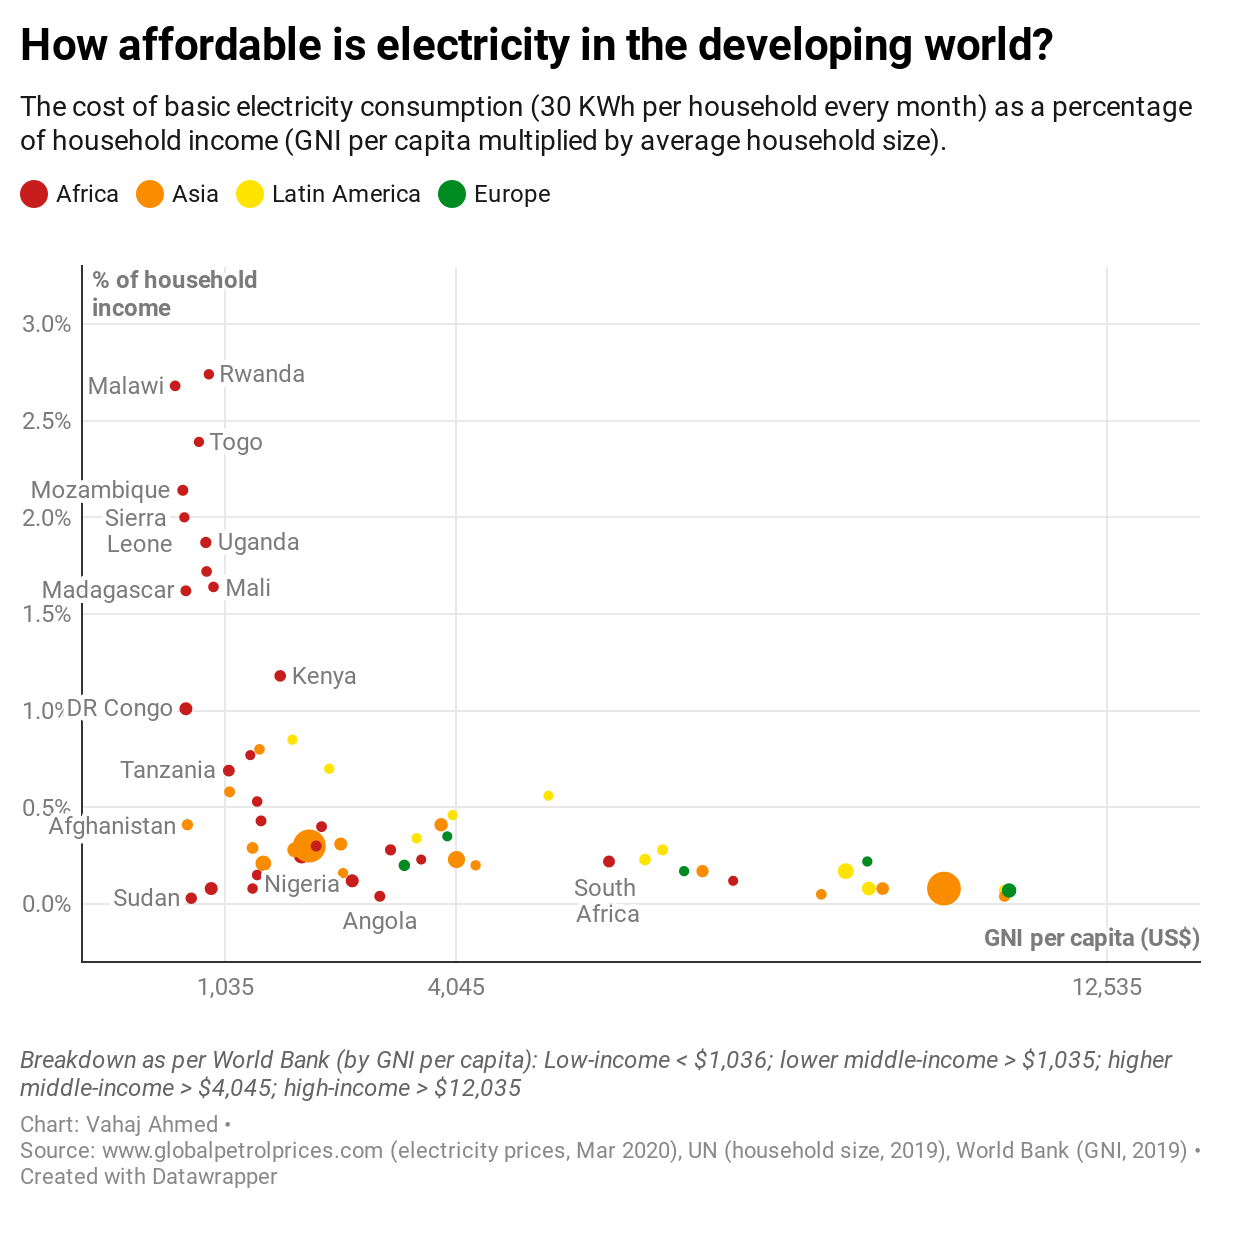 How affordable is electricity in the developing world?